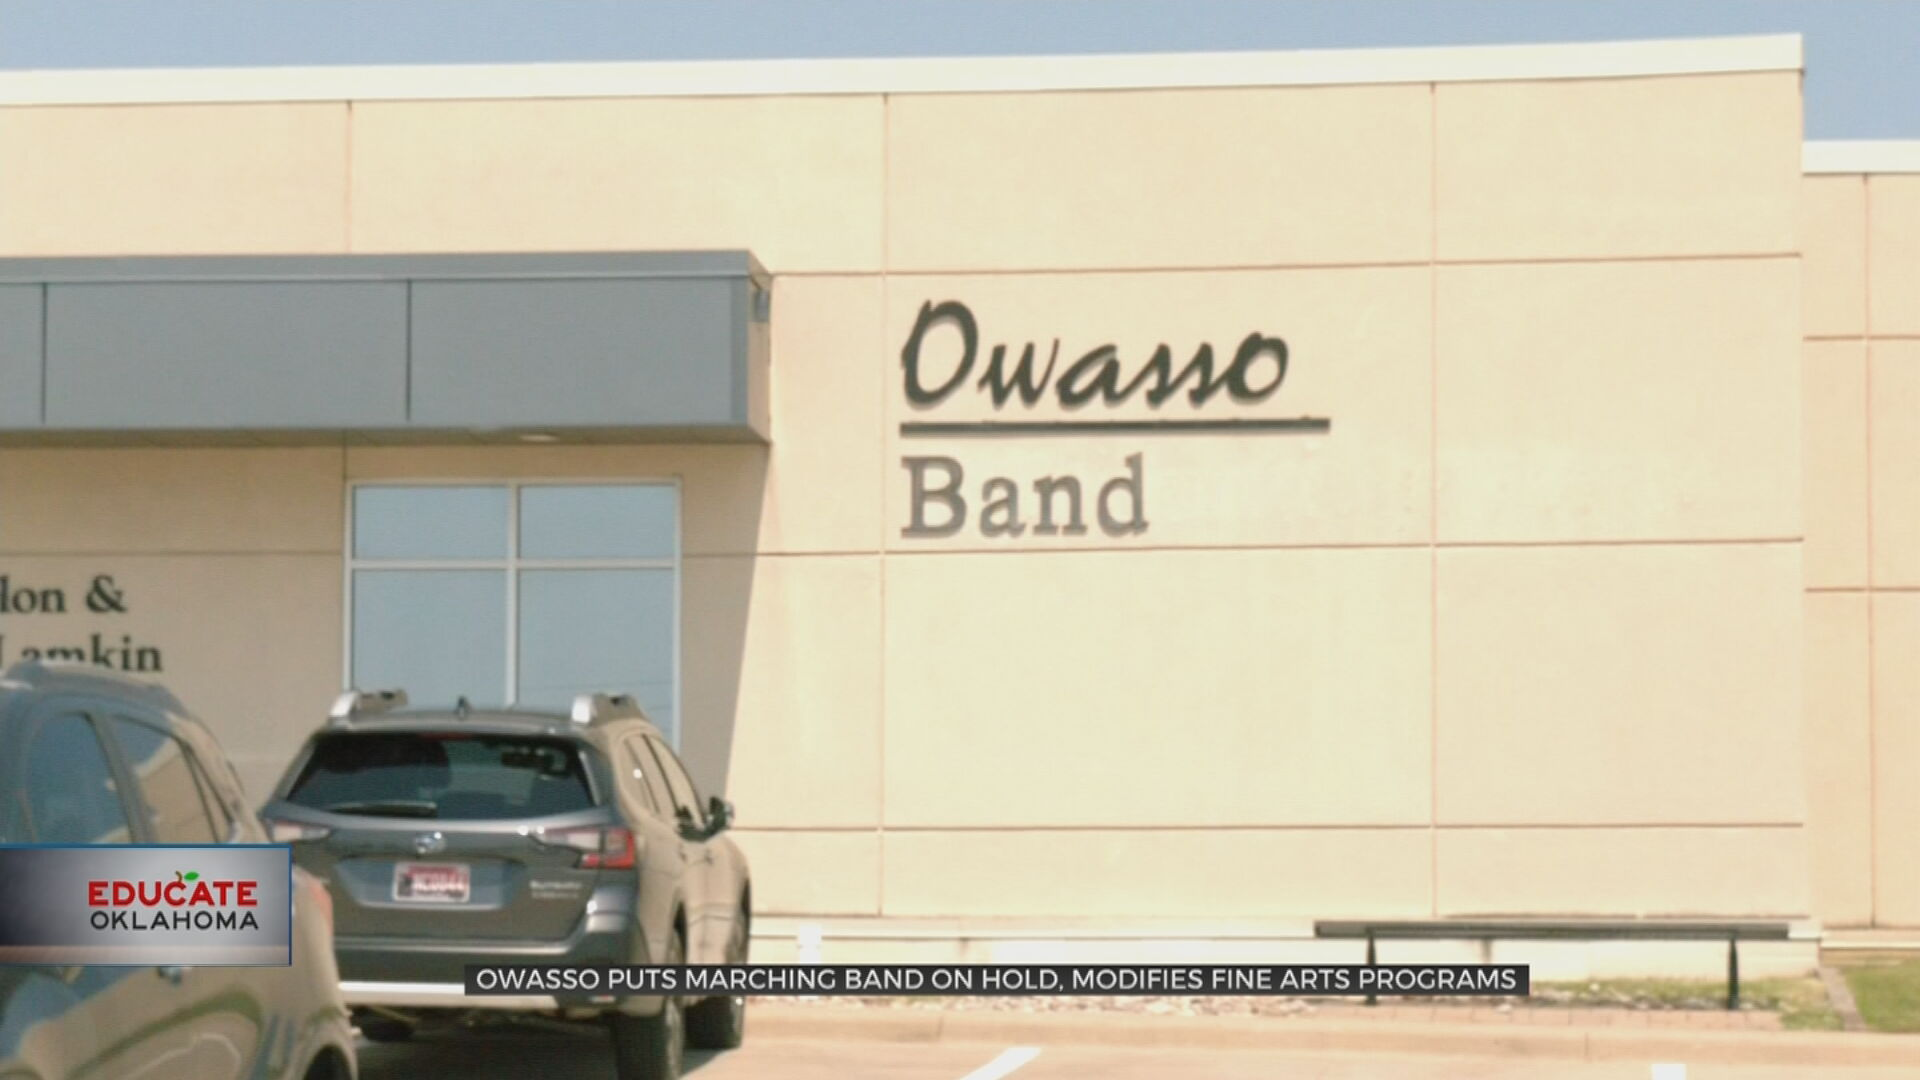 Owasso Puts Marching Band On Hold, Modifies Fine Arts Programs